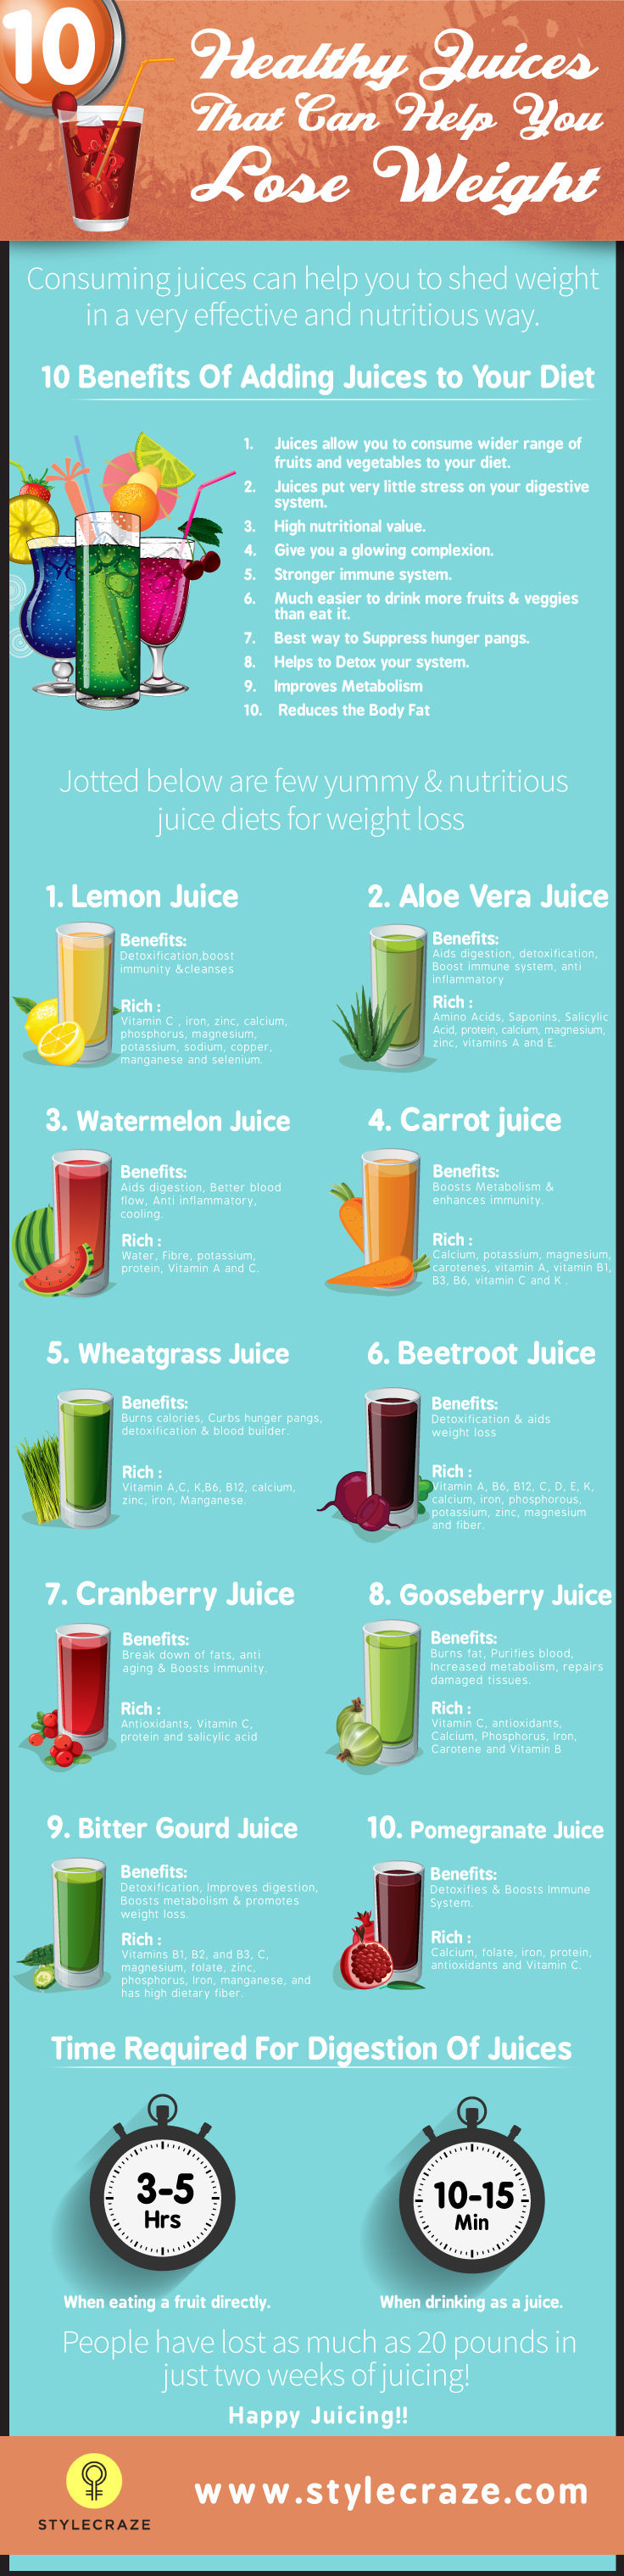 health juices for weight loss